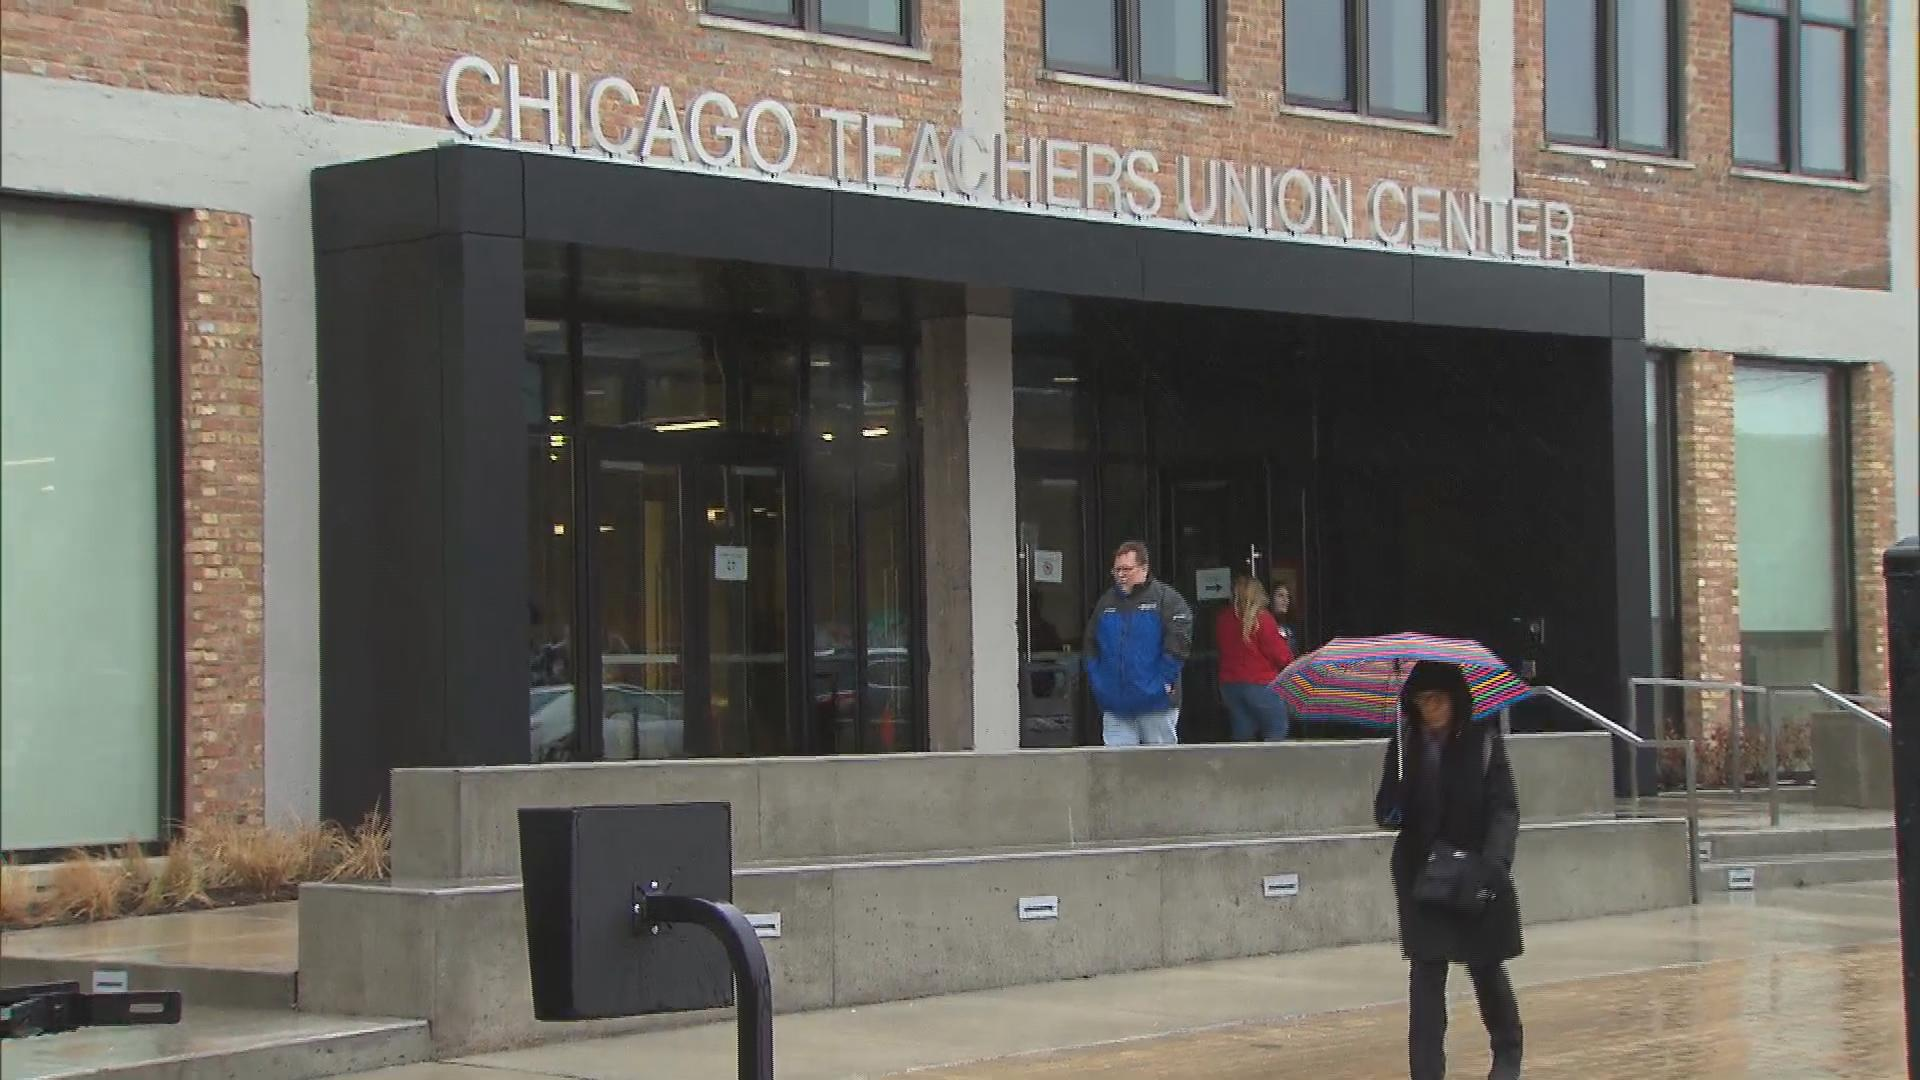 Chicago Teachers Union members are expected to vote on a potential merger with ChiACTS sometime this fall. (Chicago Tonight)